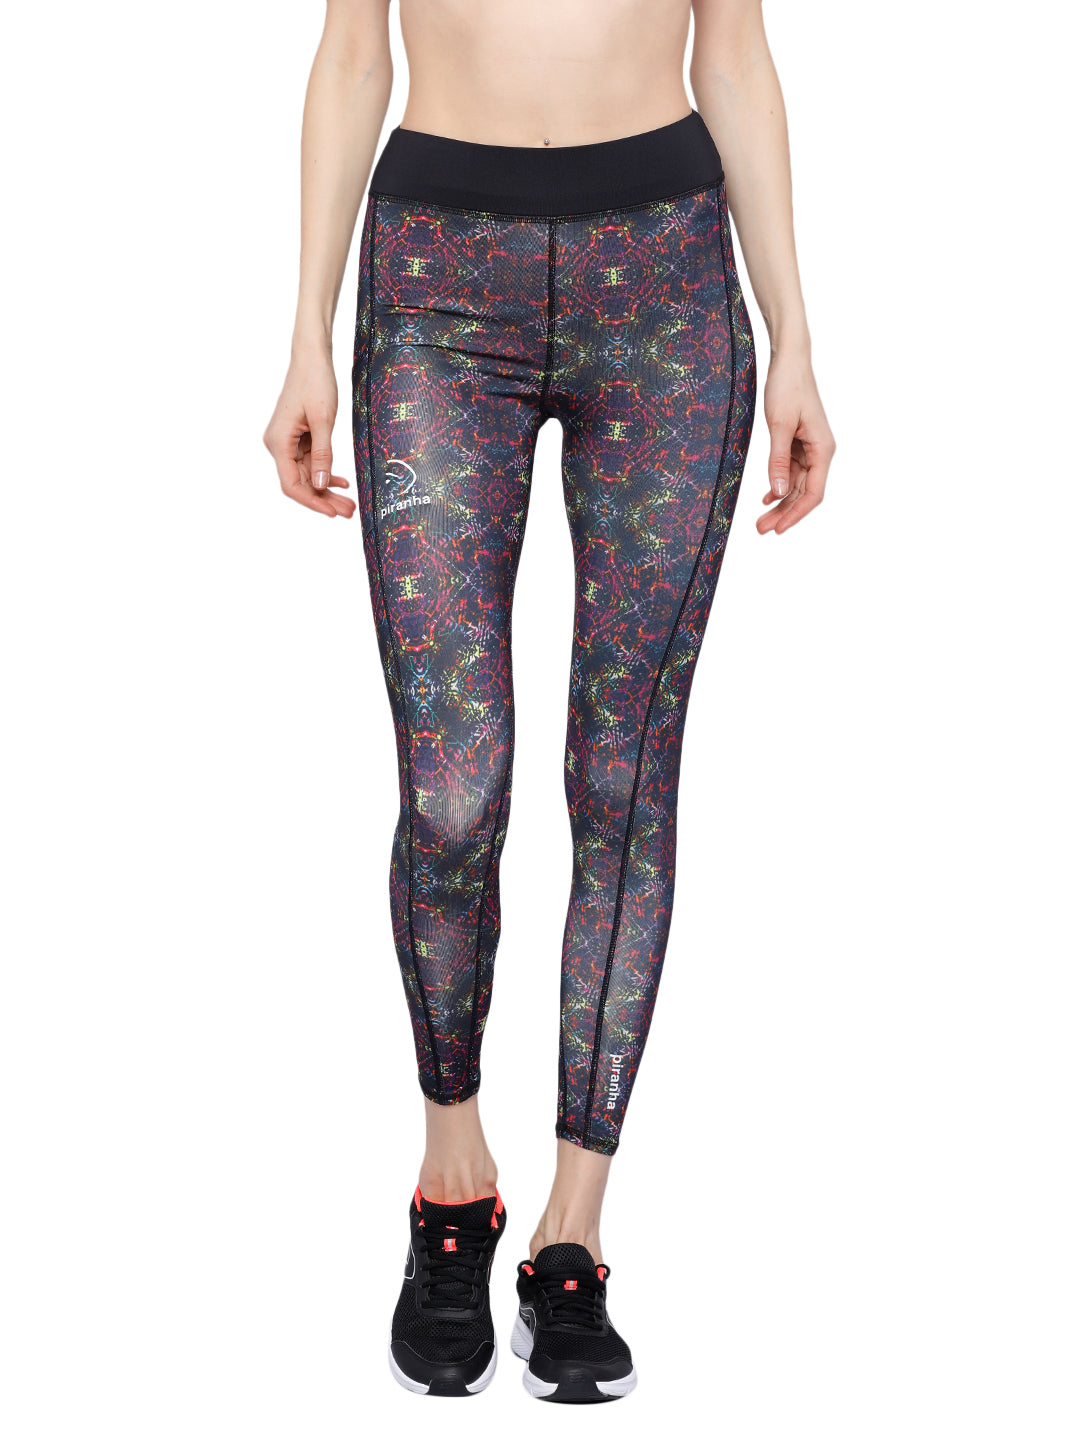 Piranha Women's Printed Yoga And Running Pants - YP05